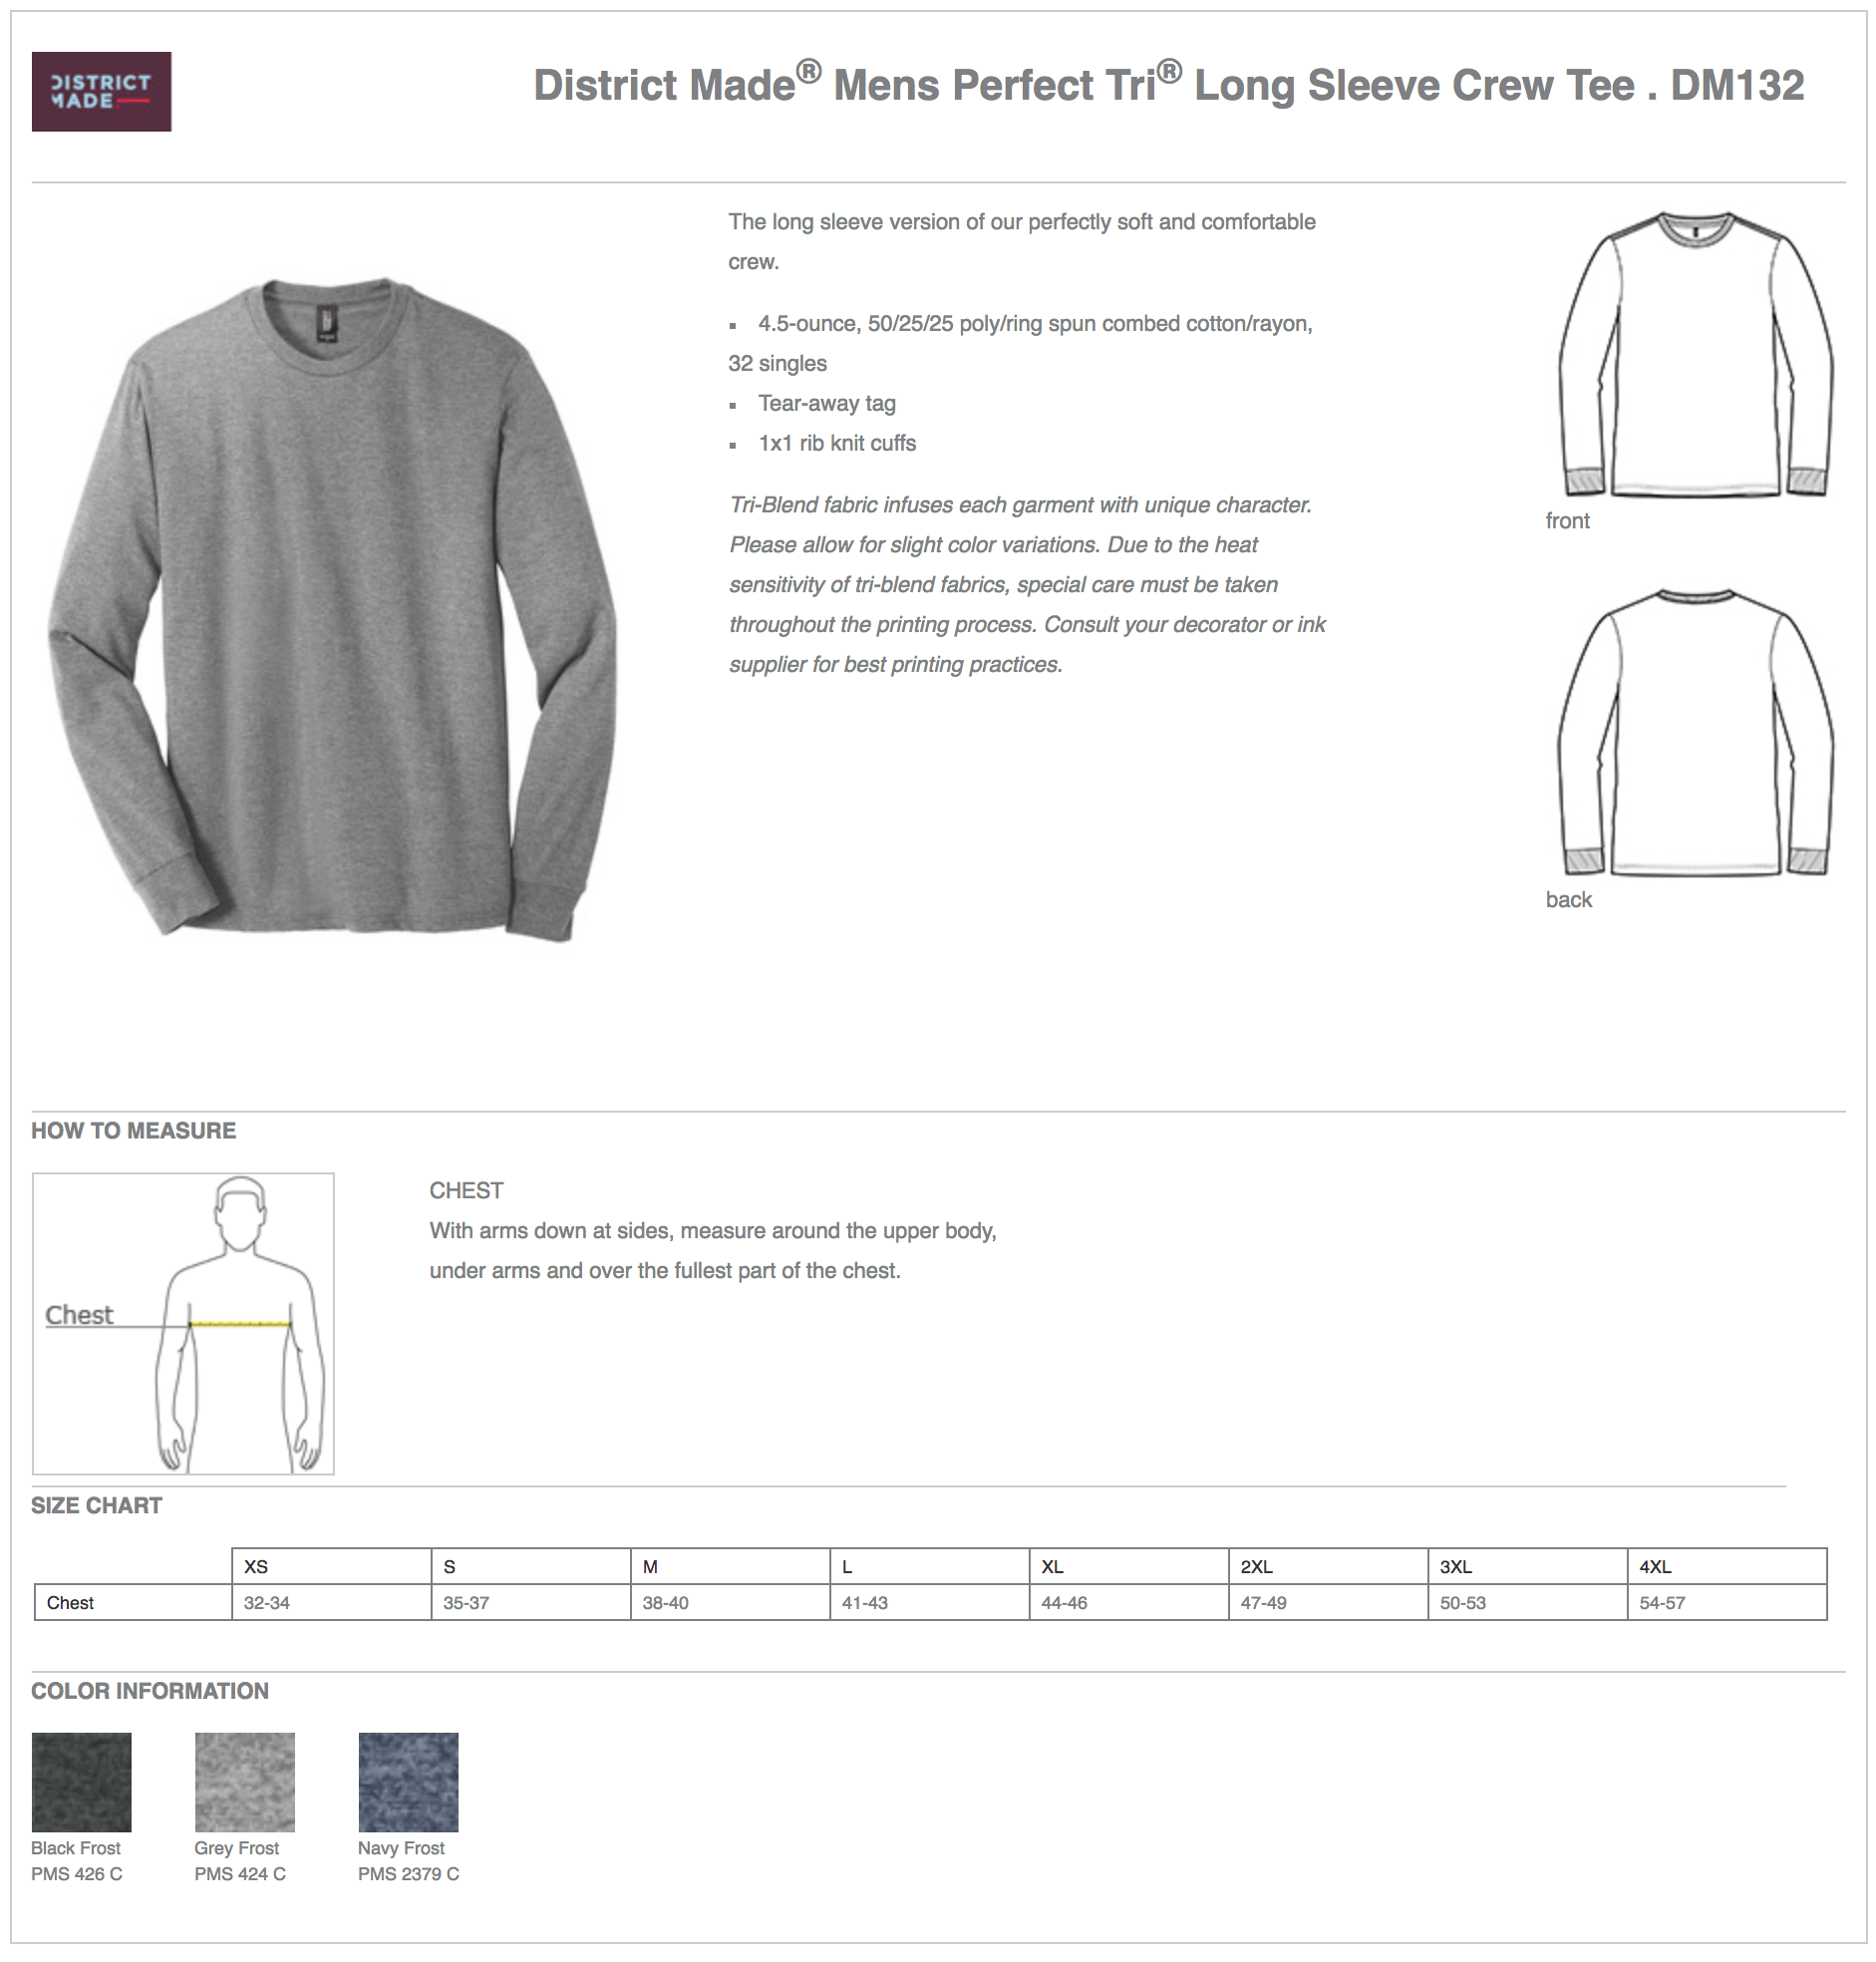 District Made DM132 Long Sleeve Custom T-Shirts